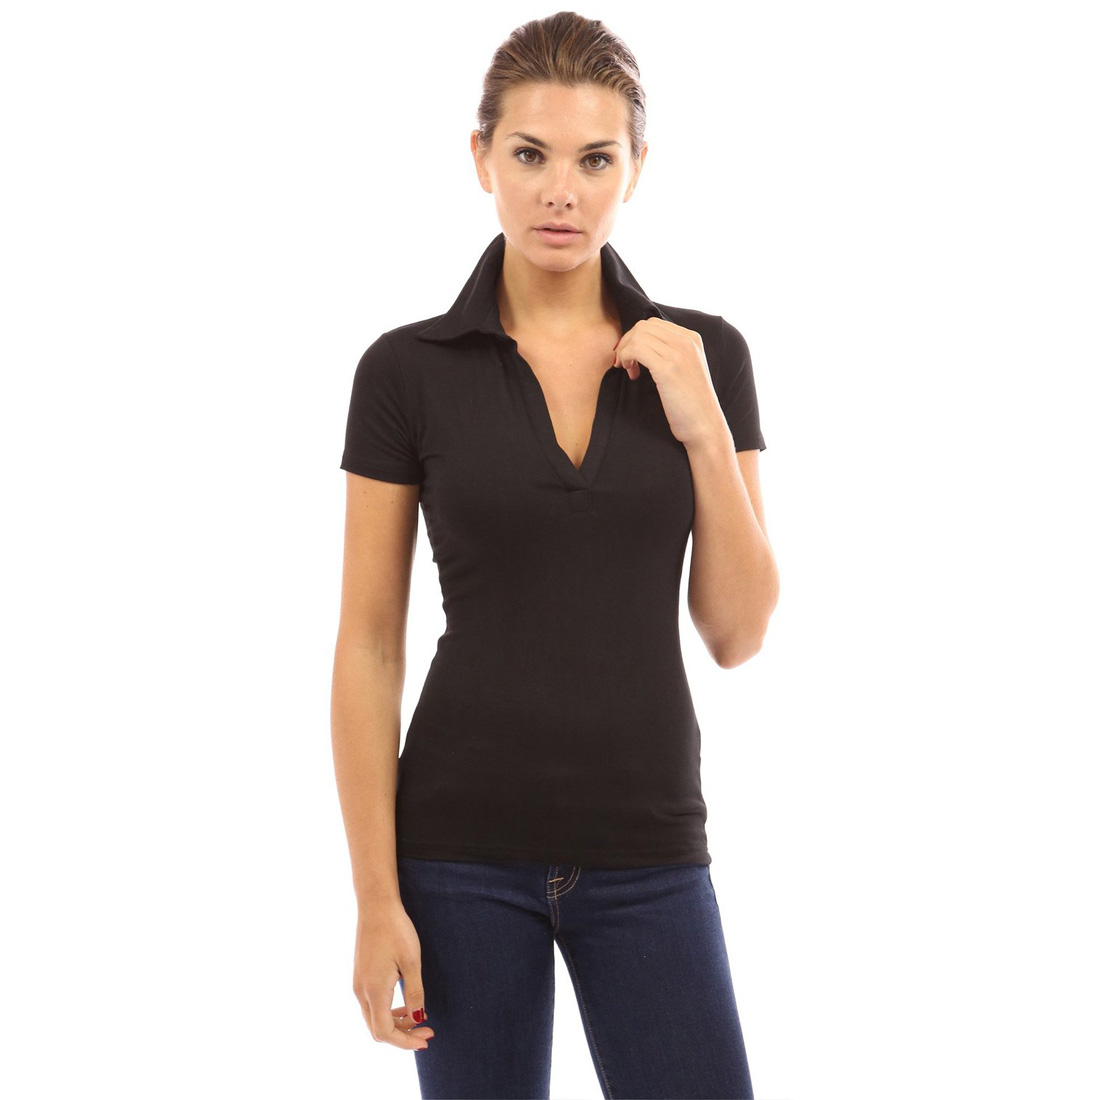 Polo Blouse V Neck Womens Long Short Sleeve Shirts Tops